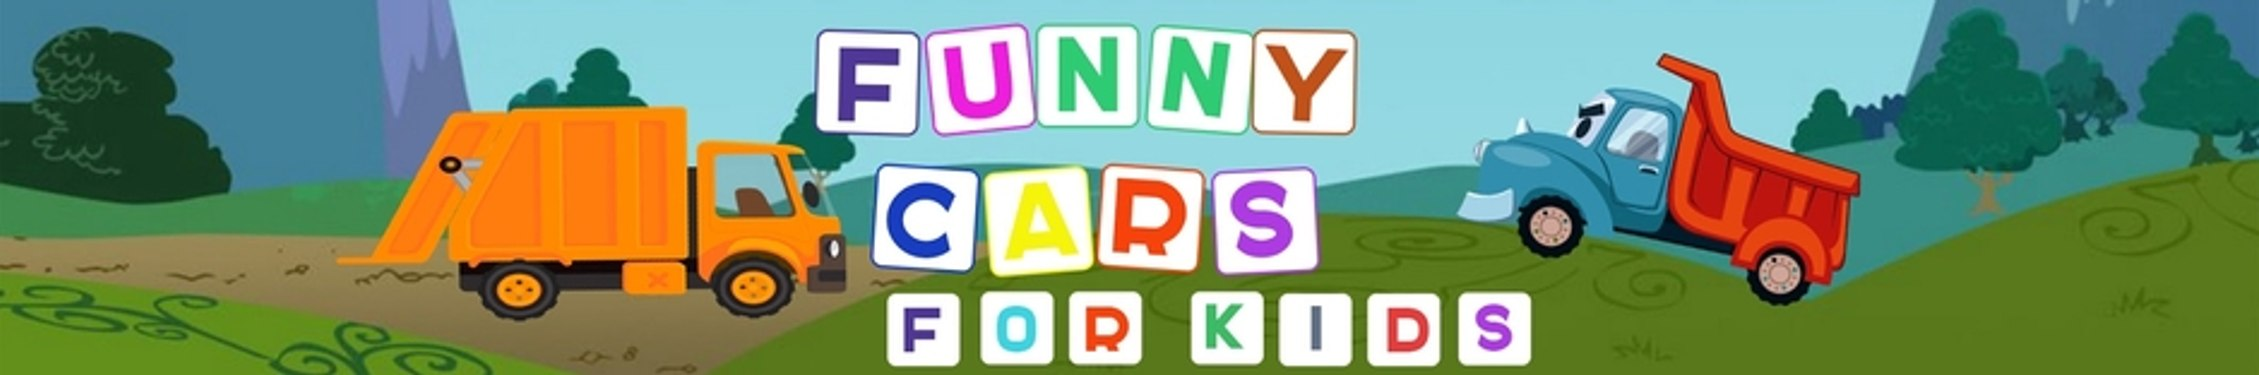 Funny Cars For Kids